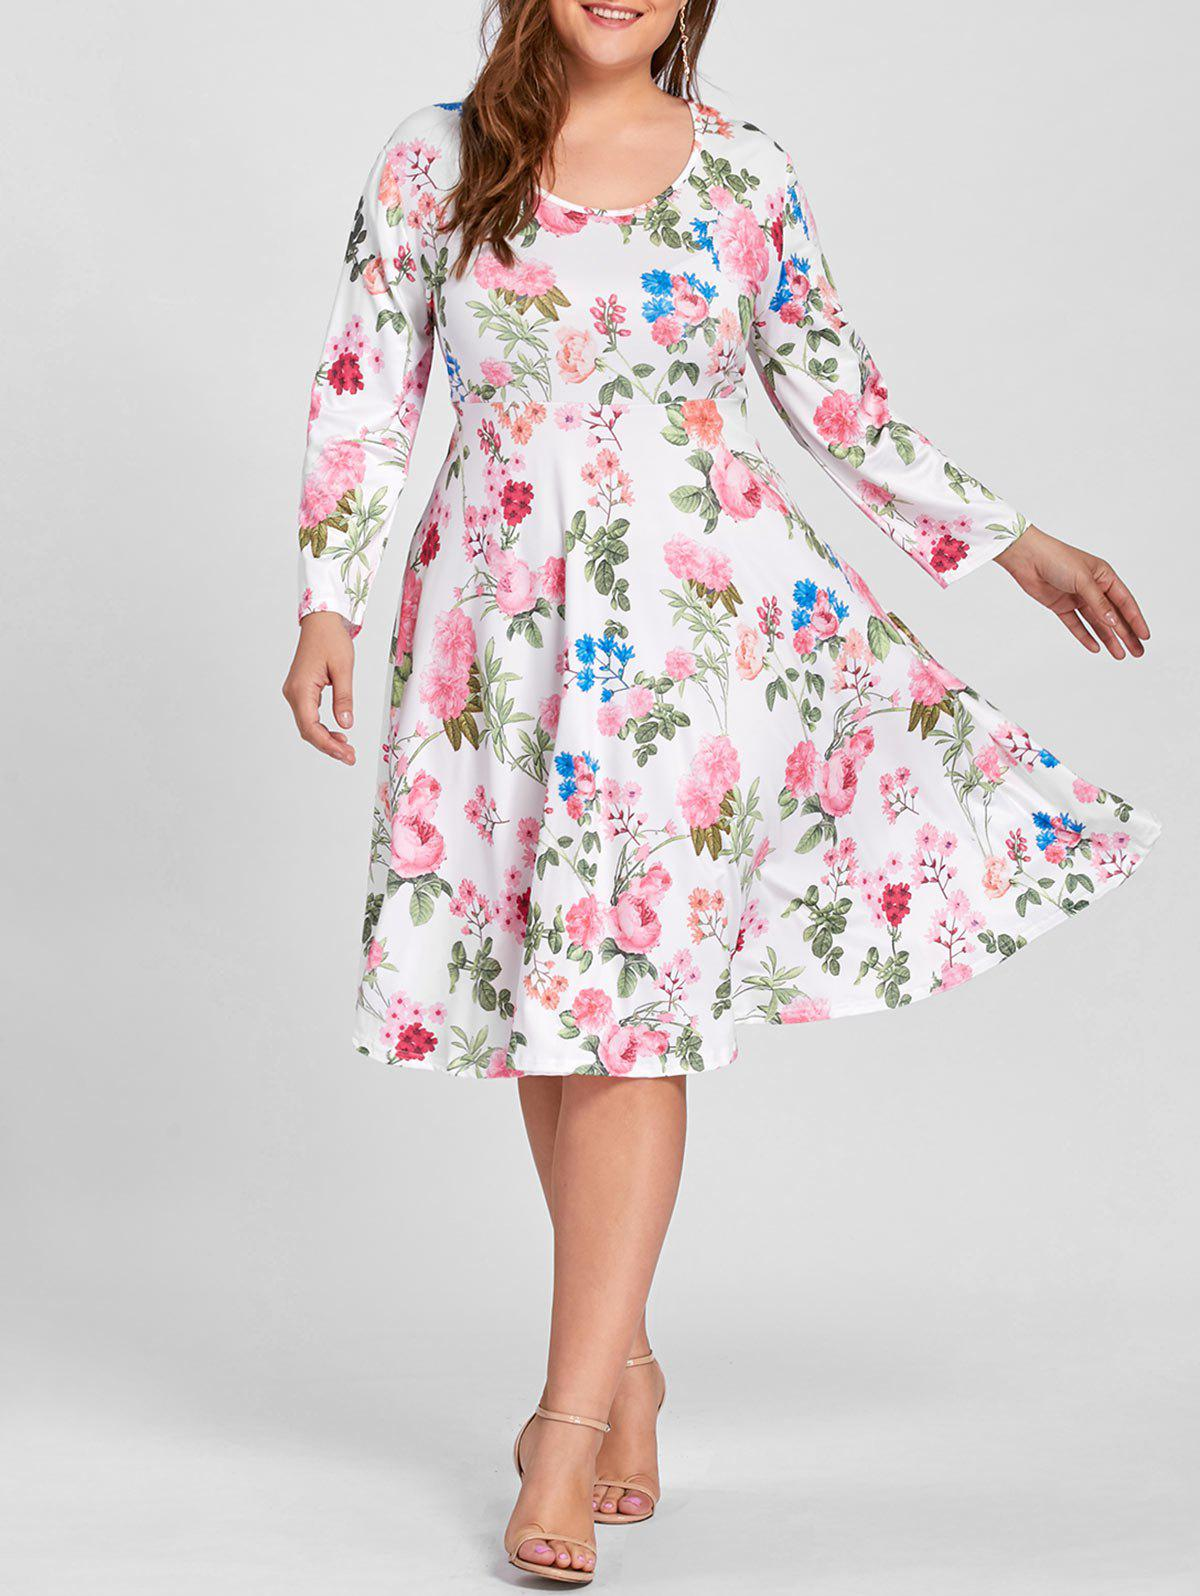 Floral Print Empire Waist Plus Size Dress - WHITE XL